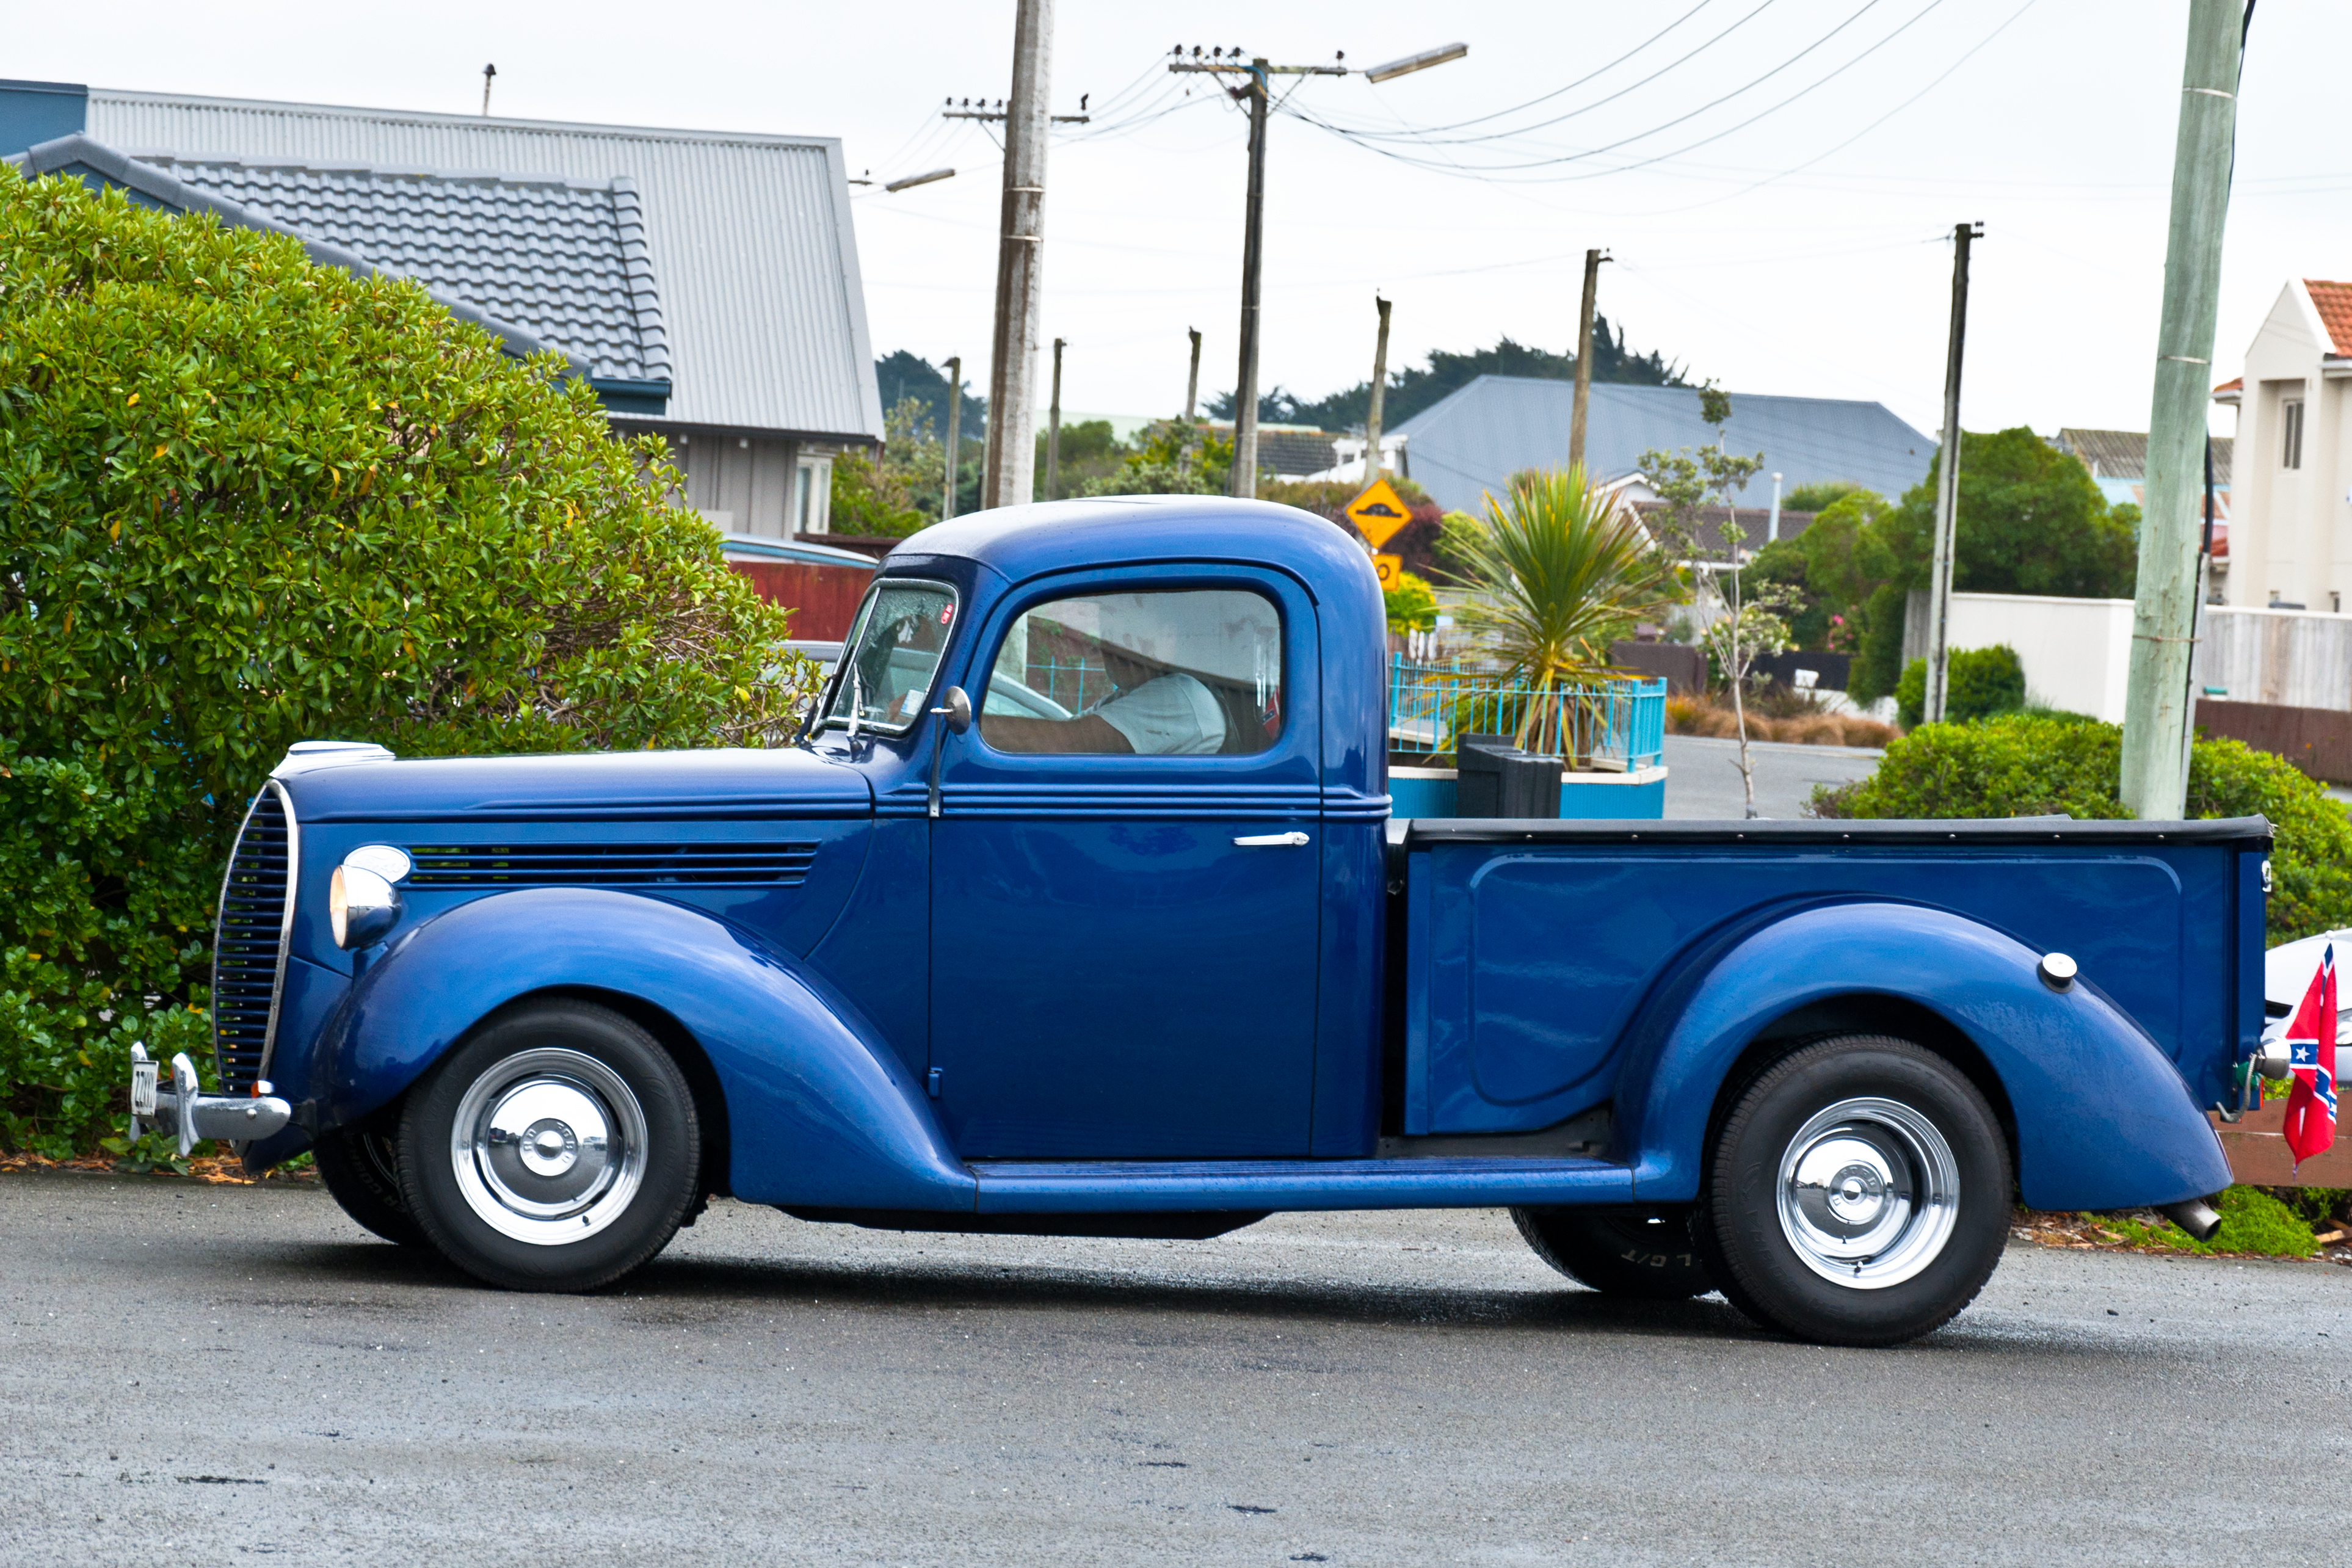 1938 FORD PICK UP, 1938, Car, Ford, New Brighton, HQ Photo